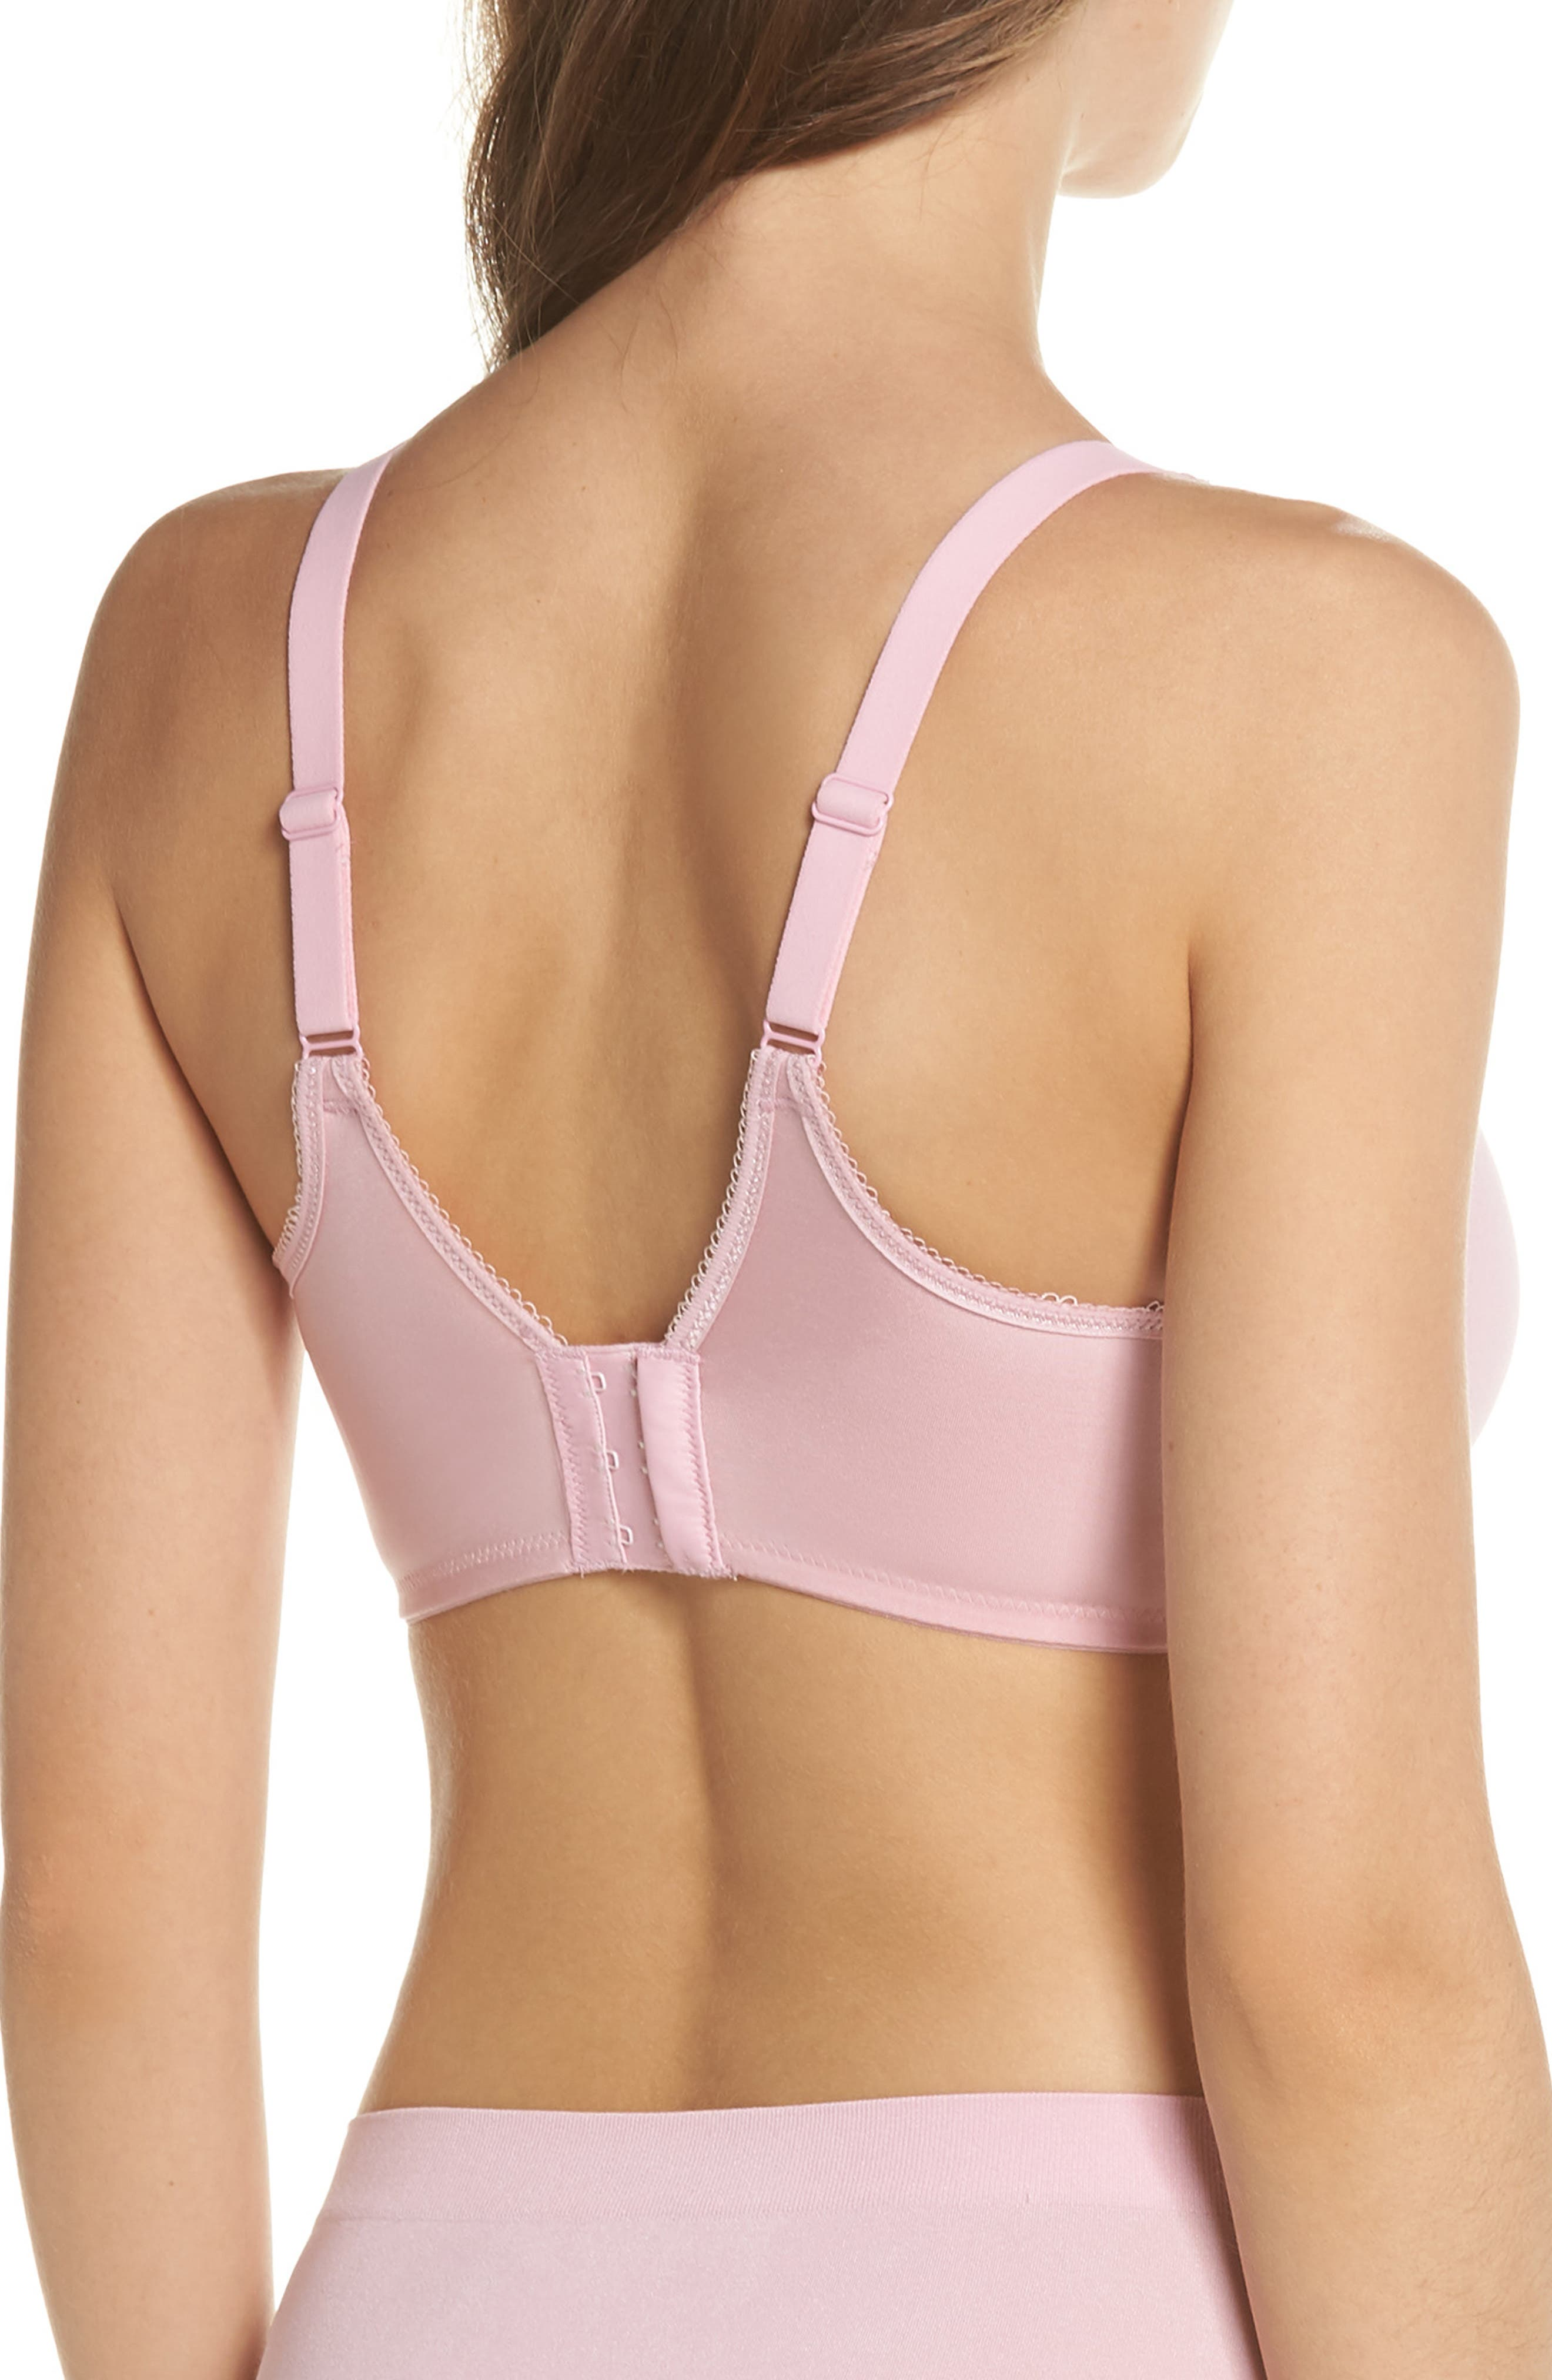 Basic Beauty Underwire Contour Bra,                             Alternate thumbnail 2, color,                             Cameo Pink